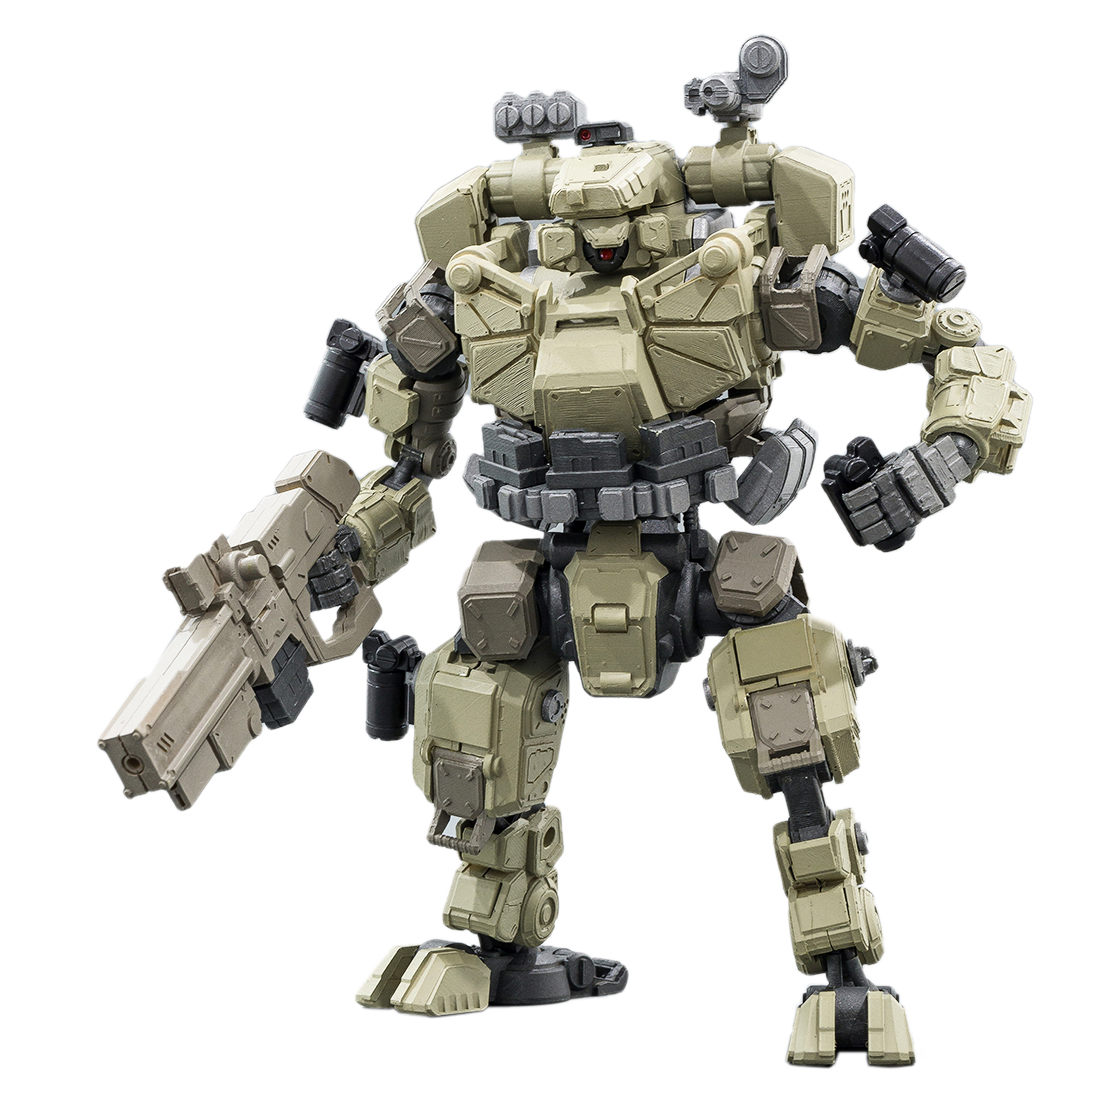 21cm DIY Large Mecha Model Assault Mecha Assorted Color Assembly Removable Handwork Soldier Model Action Toy For Kids Adults21cm DIY Large Mecha Model Assault Mecha Assorted Color Assembly Removable Handwork Soldier Model Action Toy For Kids Adults